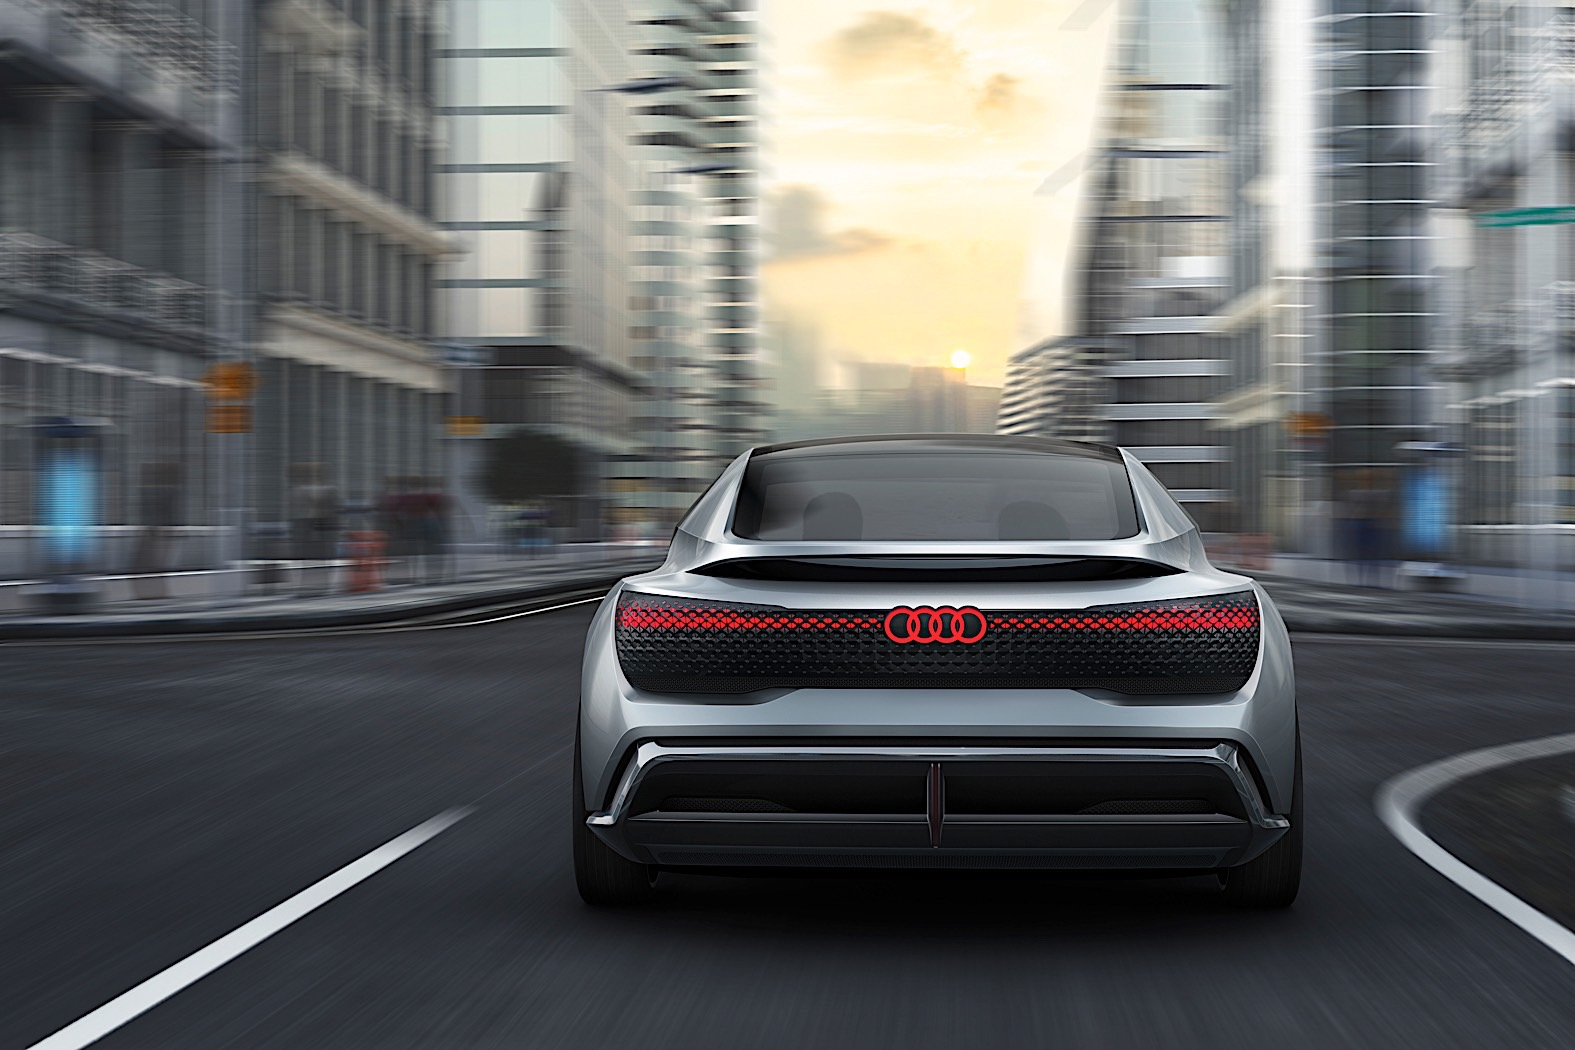 Audi aims for 800000 electric and hybrid auto  sales in 2025